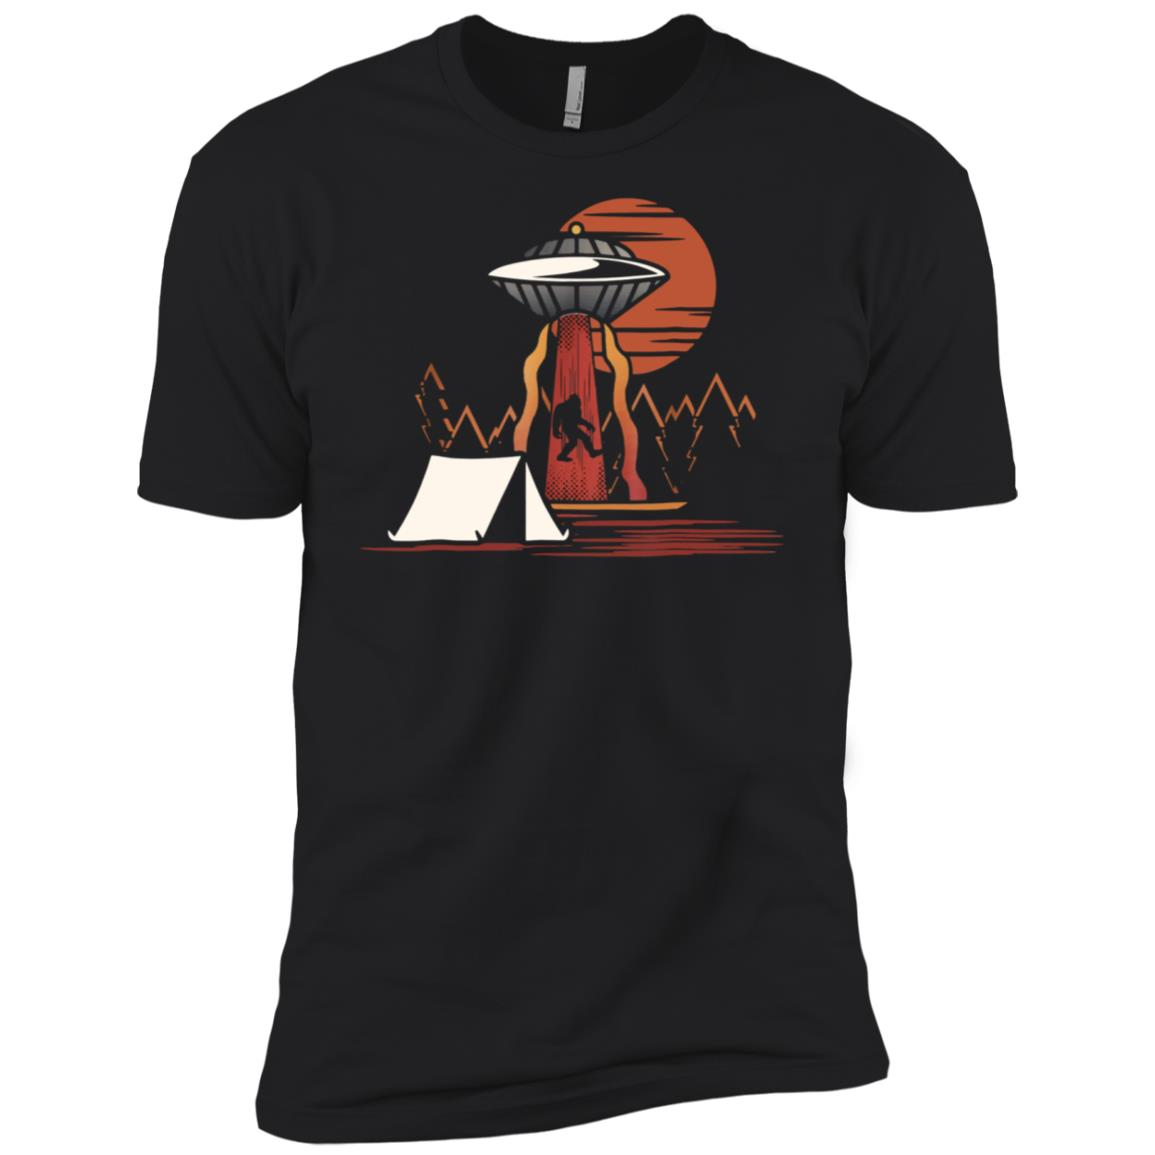 Bigfoot ufo abduction believe Men Short Sleeve T-Shirt